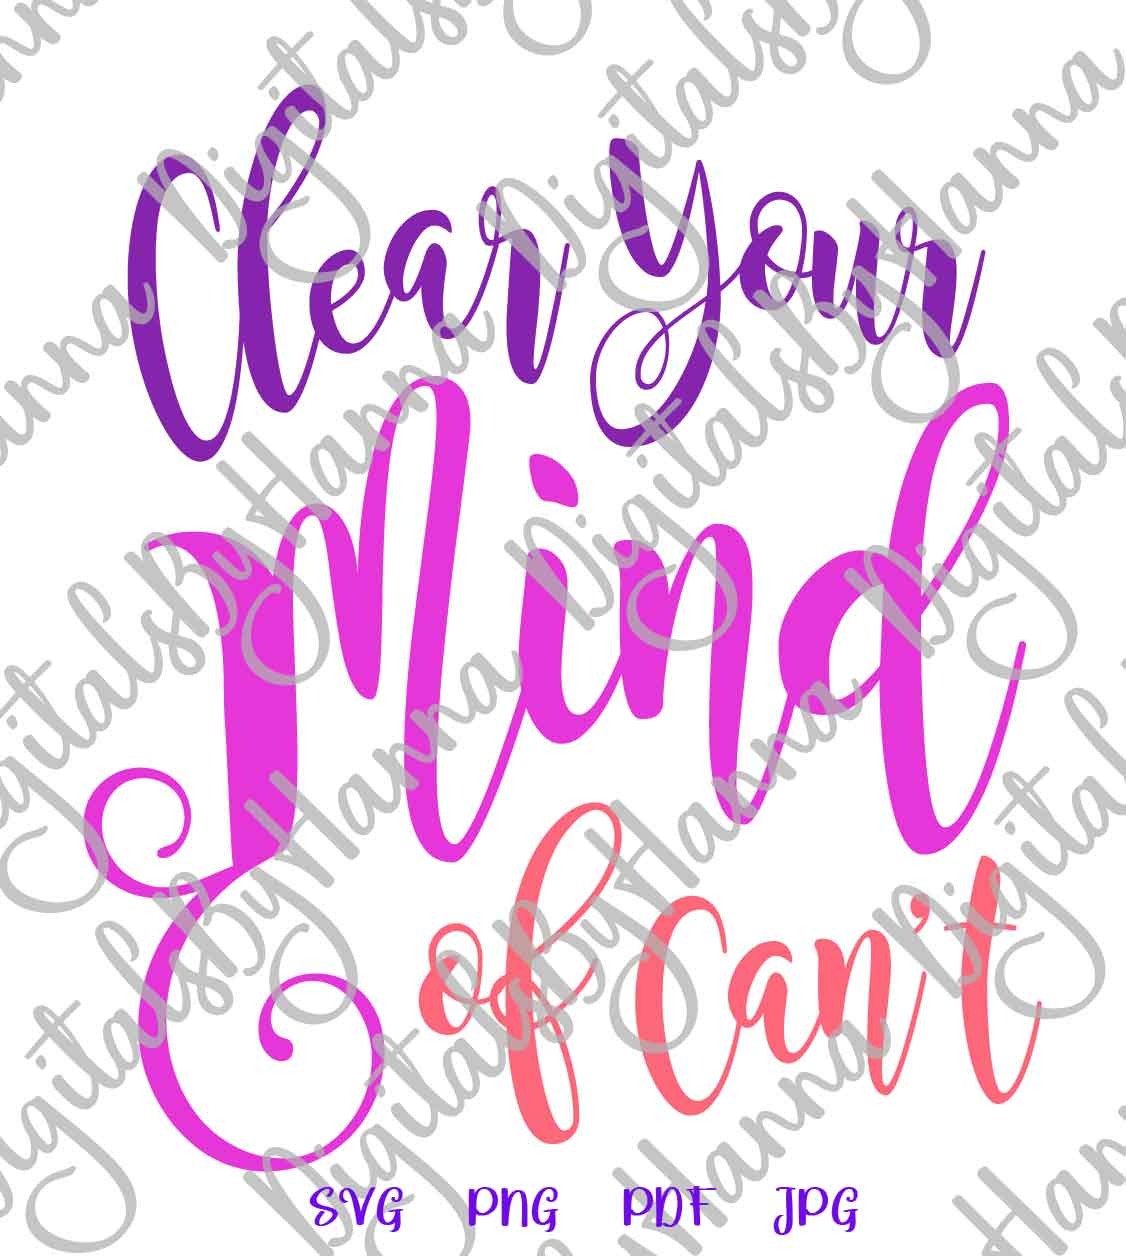 Clear Your Mind of Can't Inspirational Cut File SVG DXF PNG example image 3